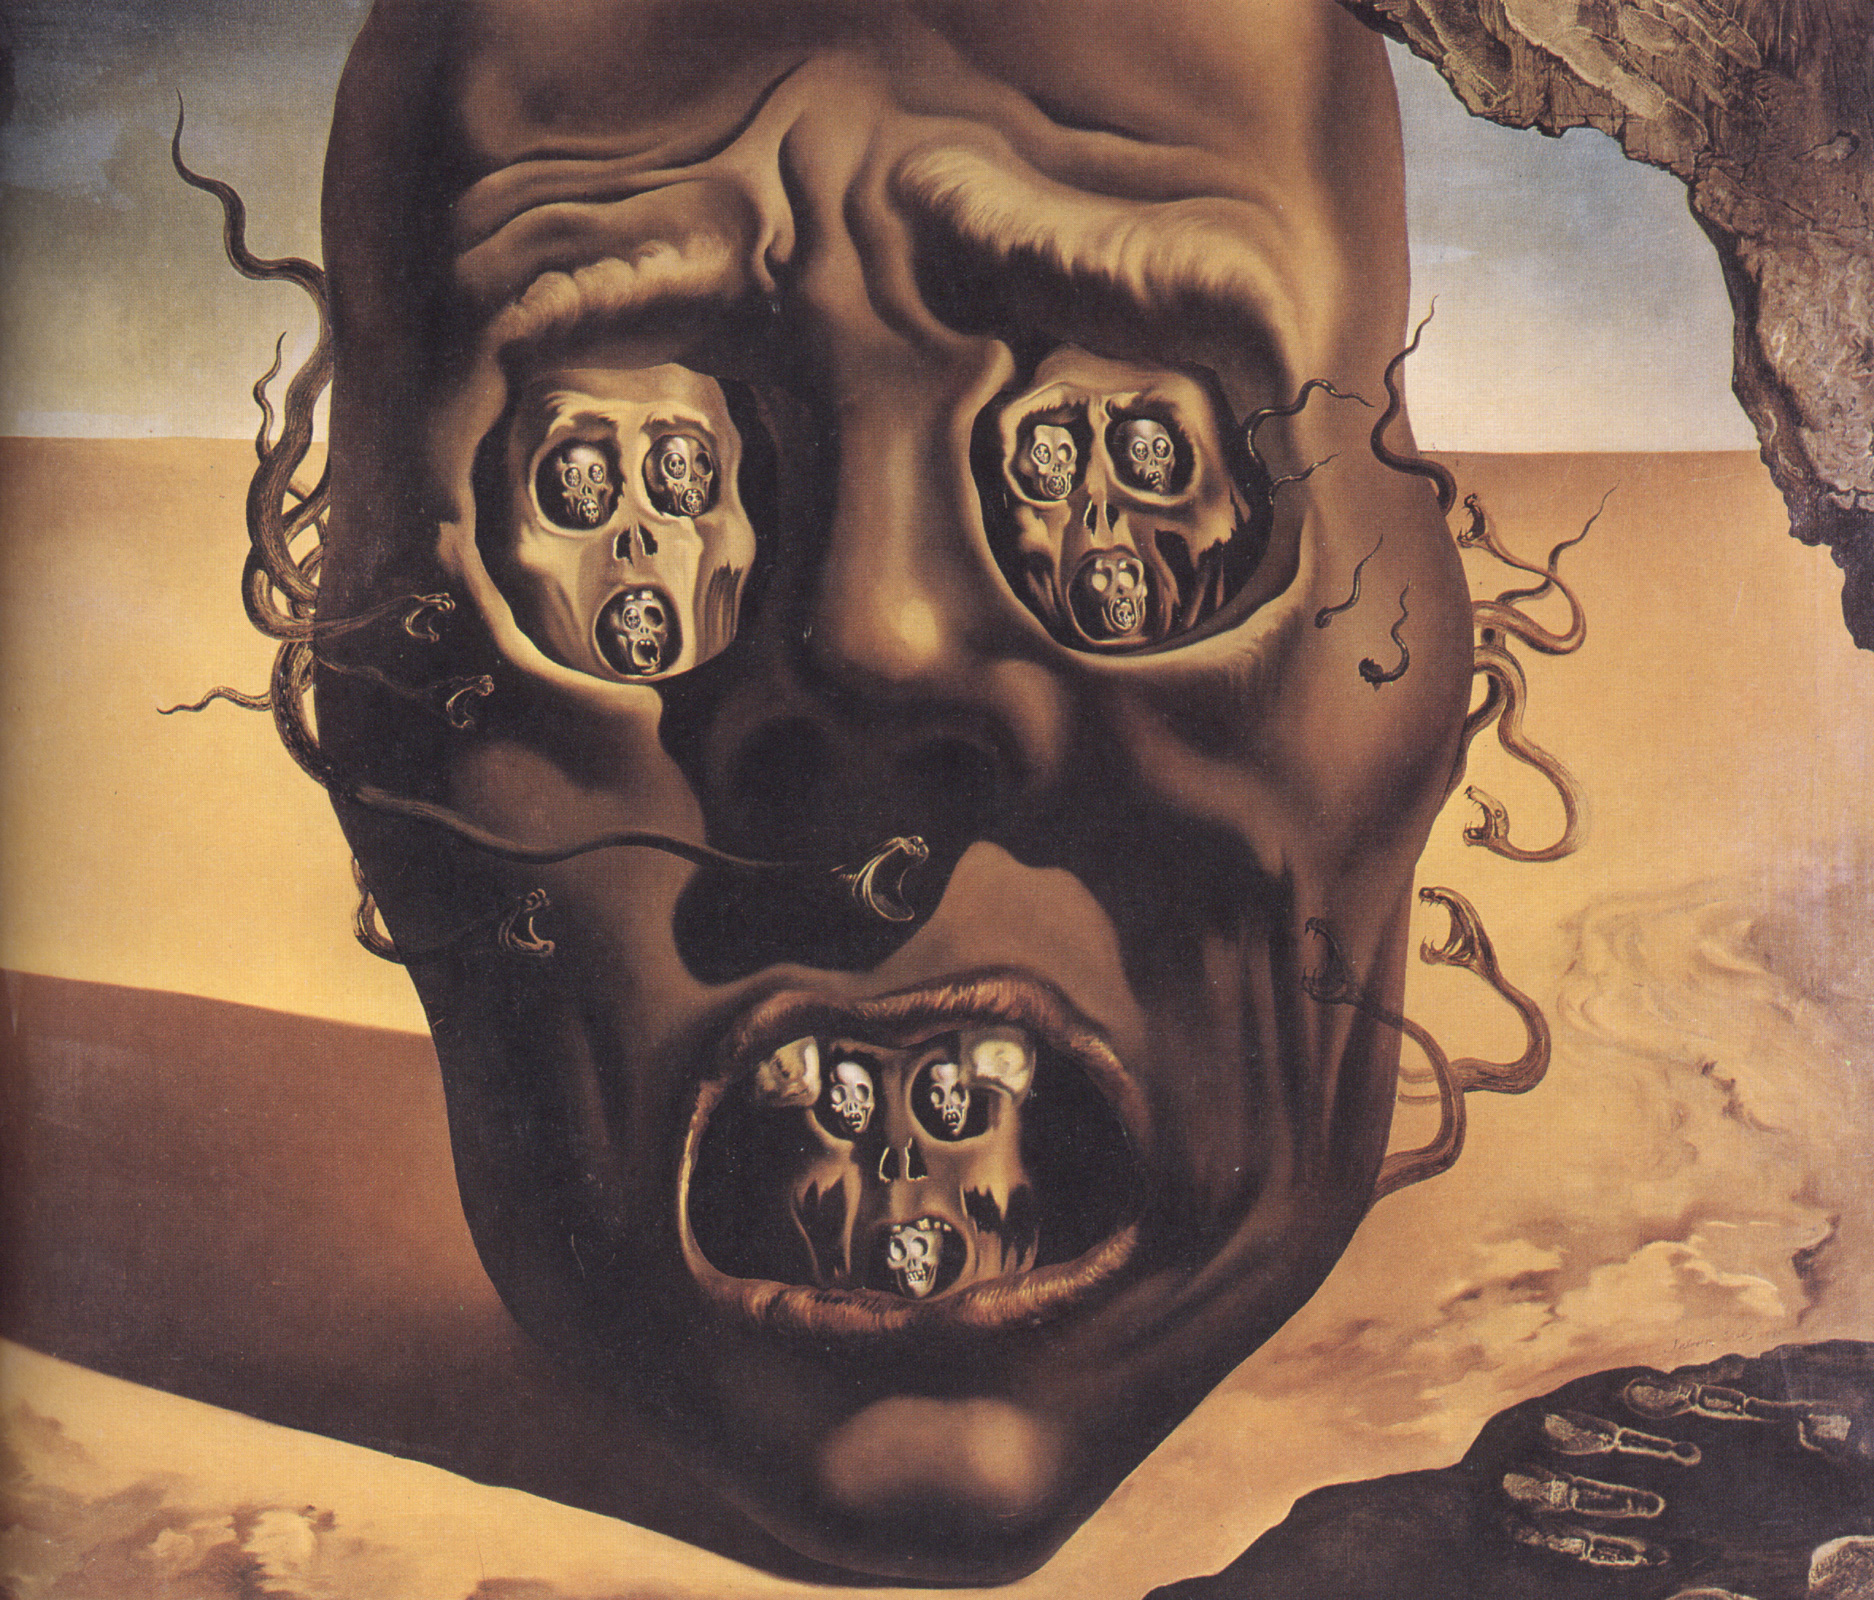 Melting clocks bizarro central for All of salvador dali paintings